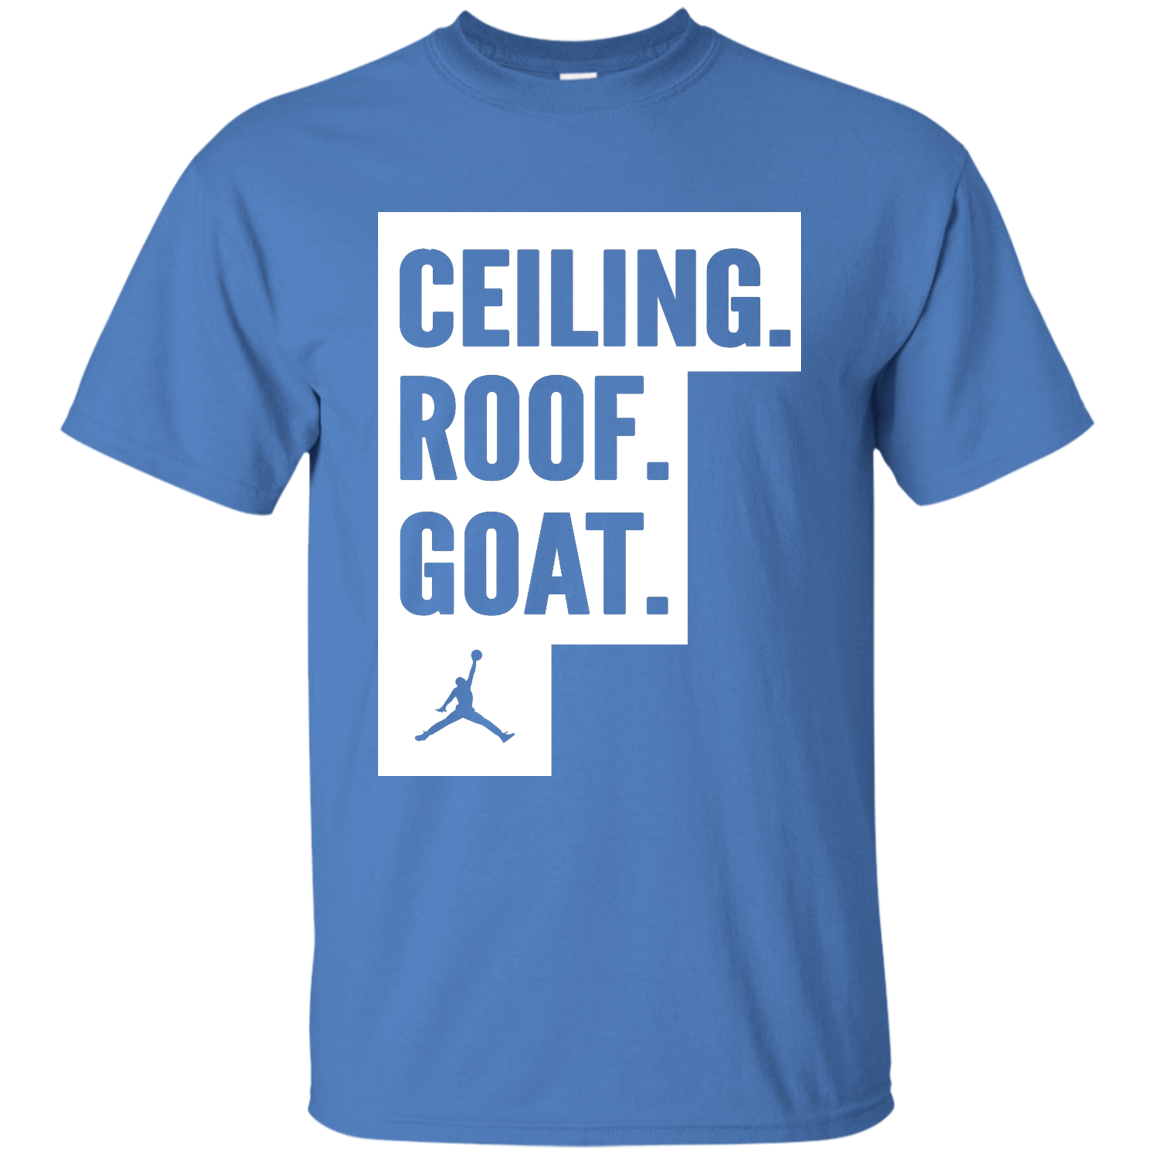 Ceiling Roof Goat Shirt Sweater Tank sold by iFrogtees | Merchandise ...